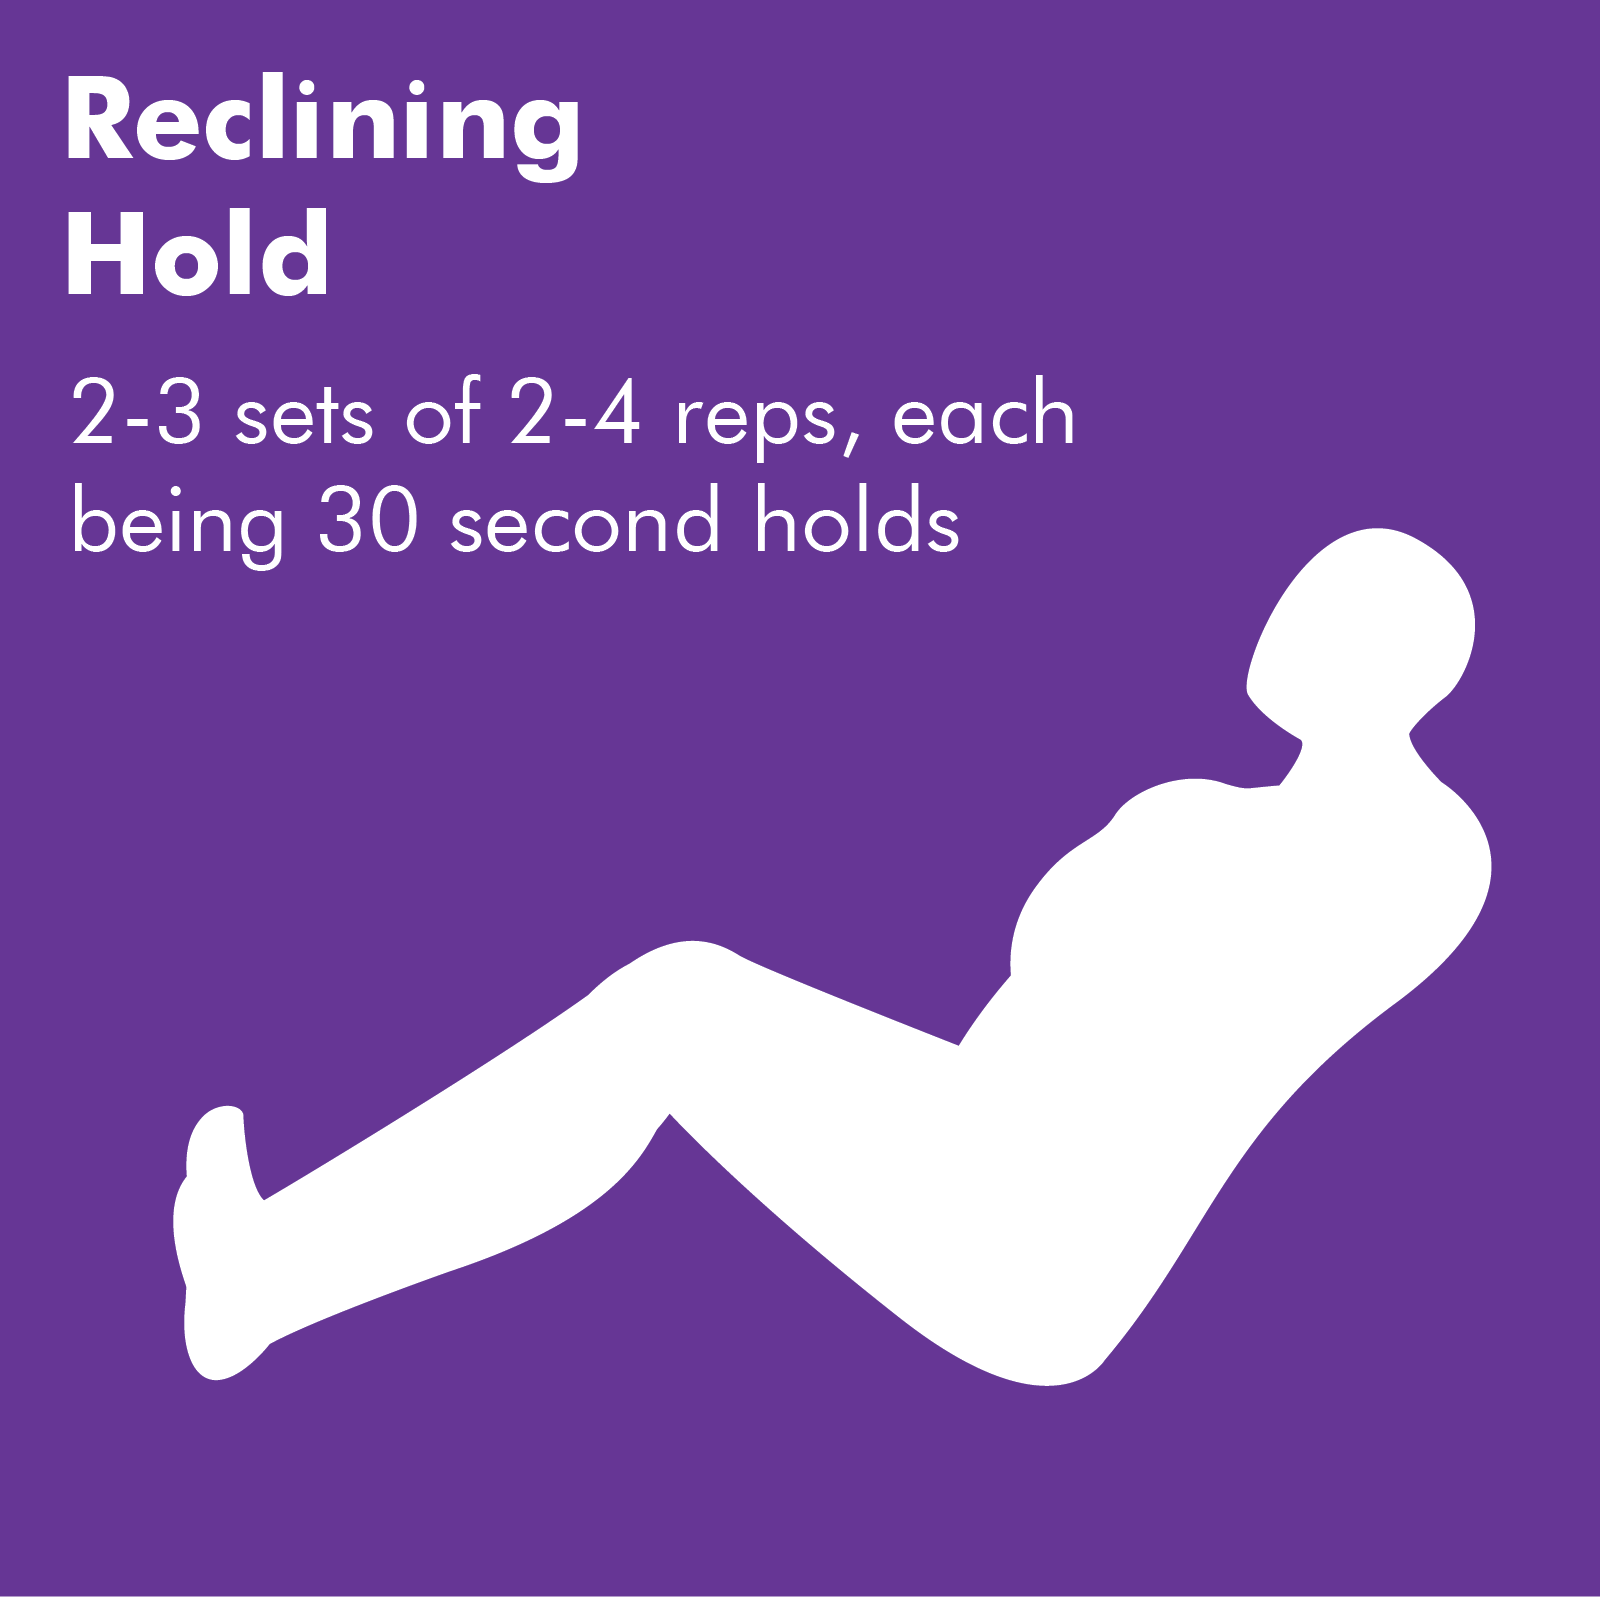 A reclining hold is just like a regular sit-up except you hold it in the halfway position. These can be swapped with regular sit ups, 15-30 reps, if you prefer.